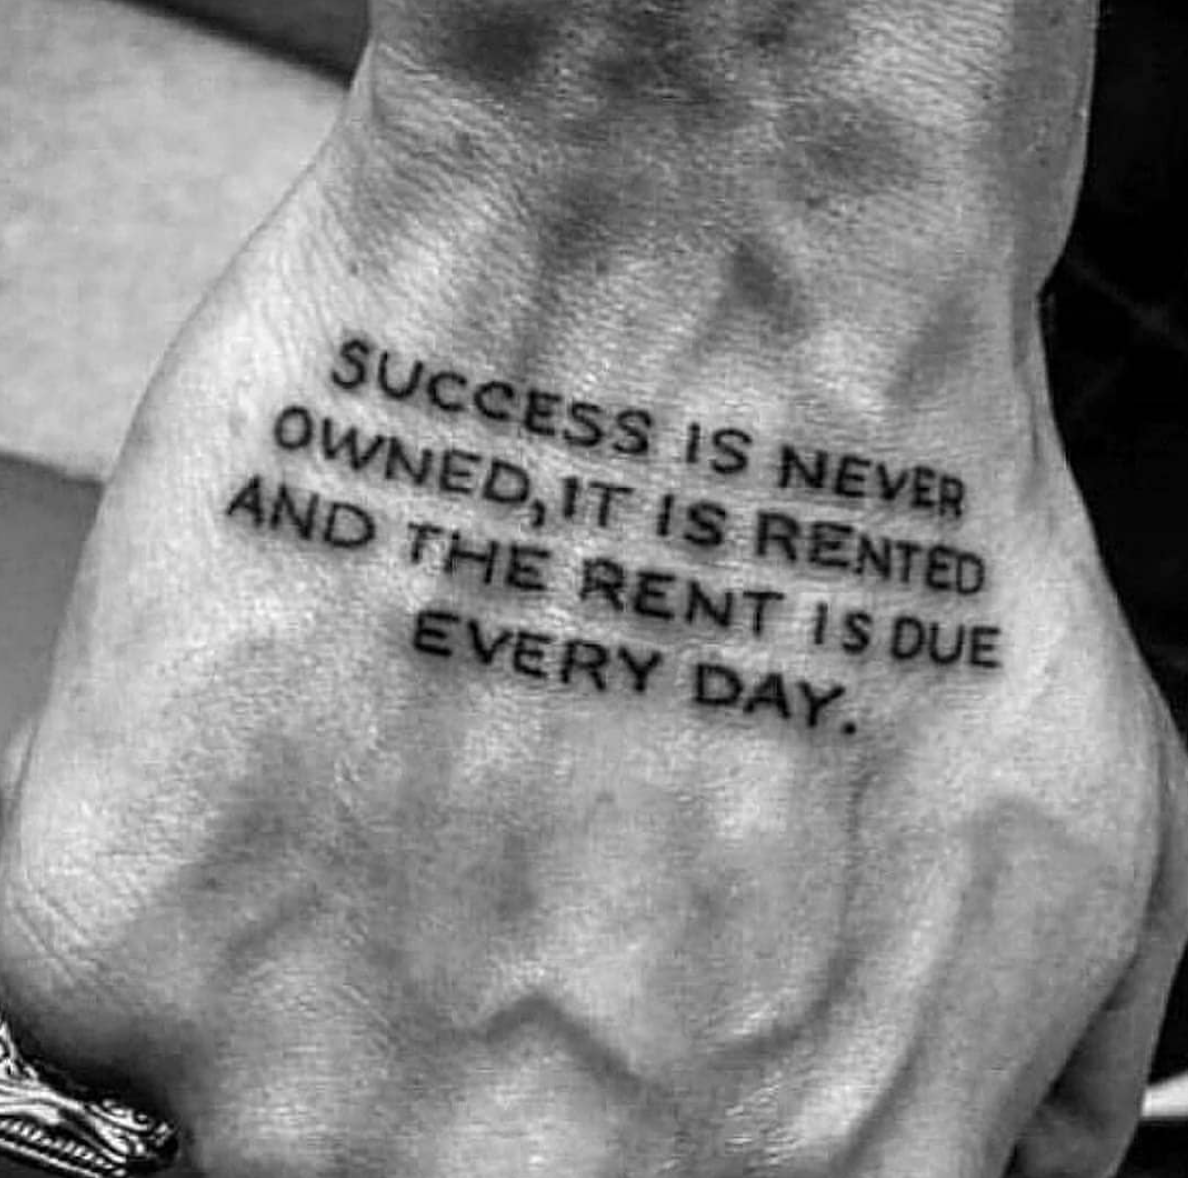 [Image] Success costs you hard work, and it must be paid every day.